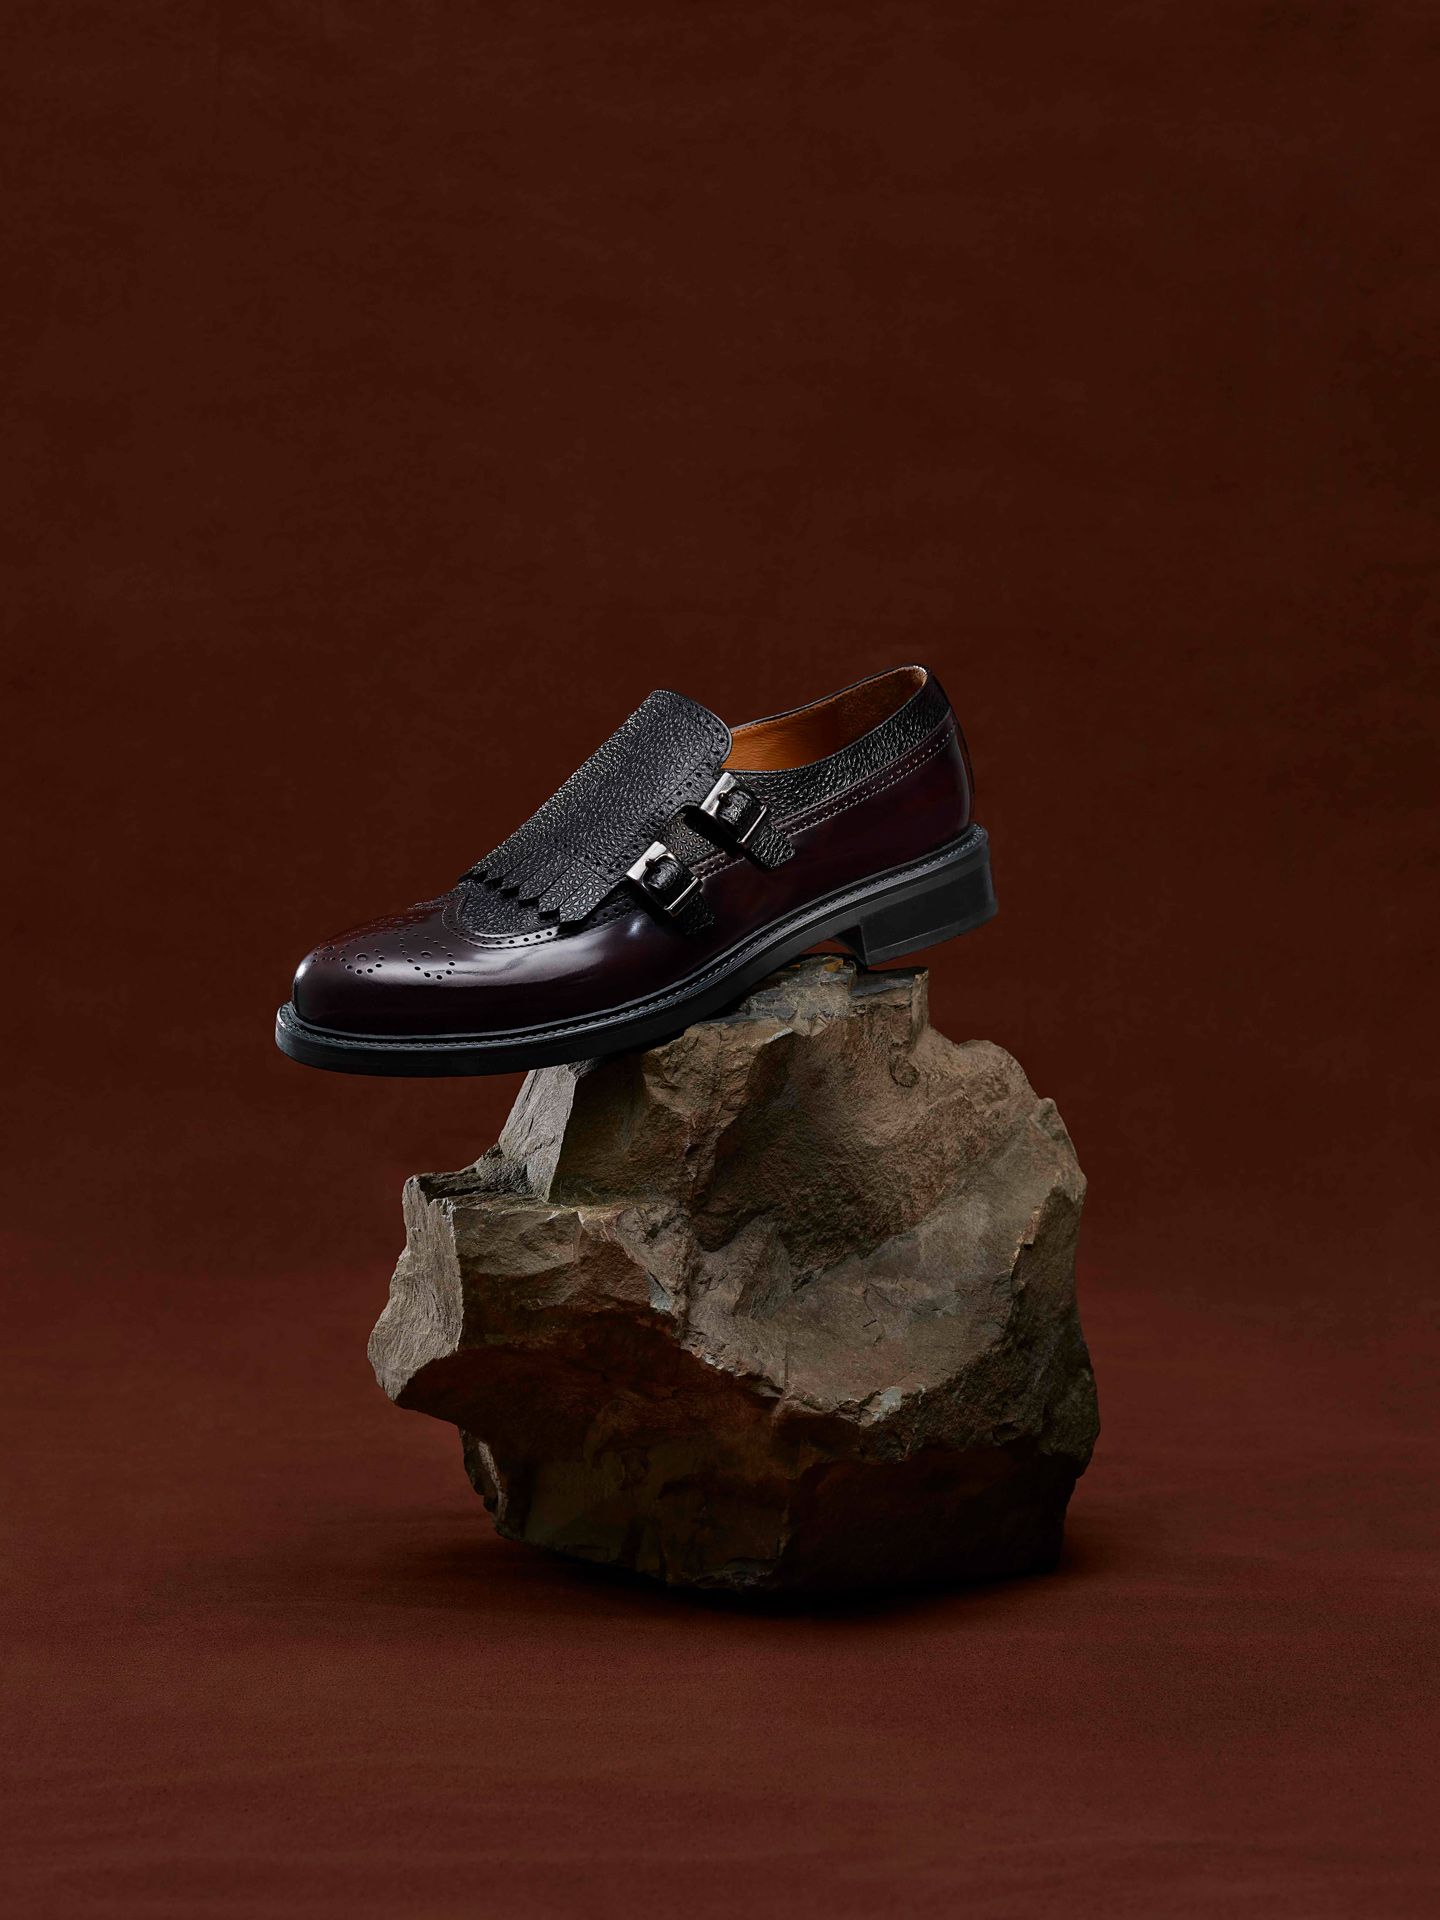 black leather shoe on brown rock on dark red background photographed by Maxyme G Delisle with artistic direction from Studio TB for Jean-Paul Fortin Fall collection